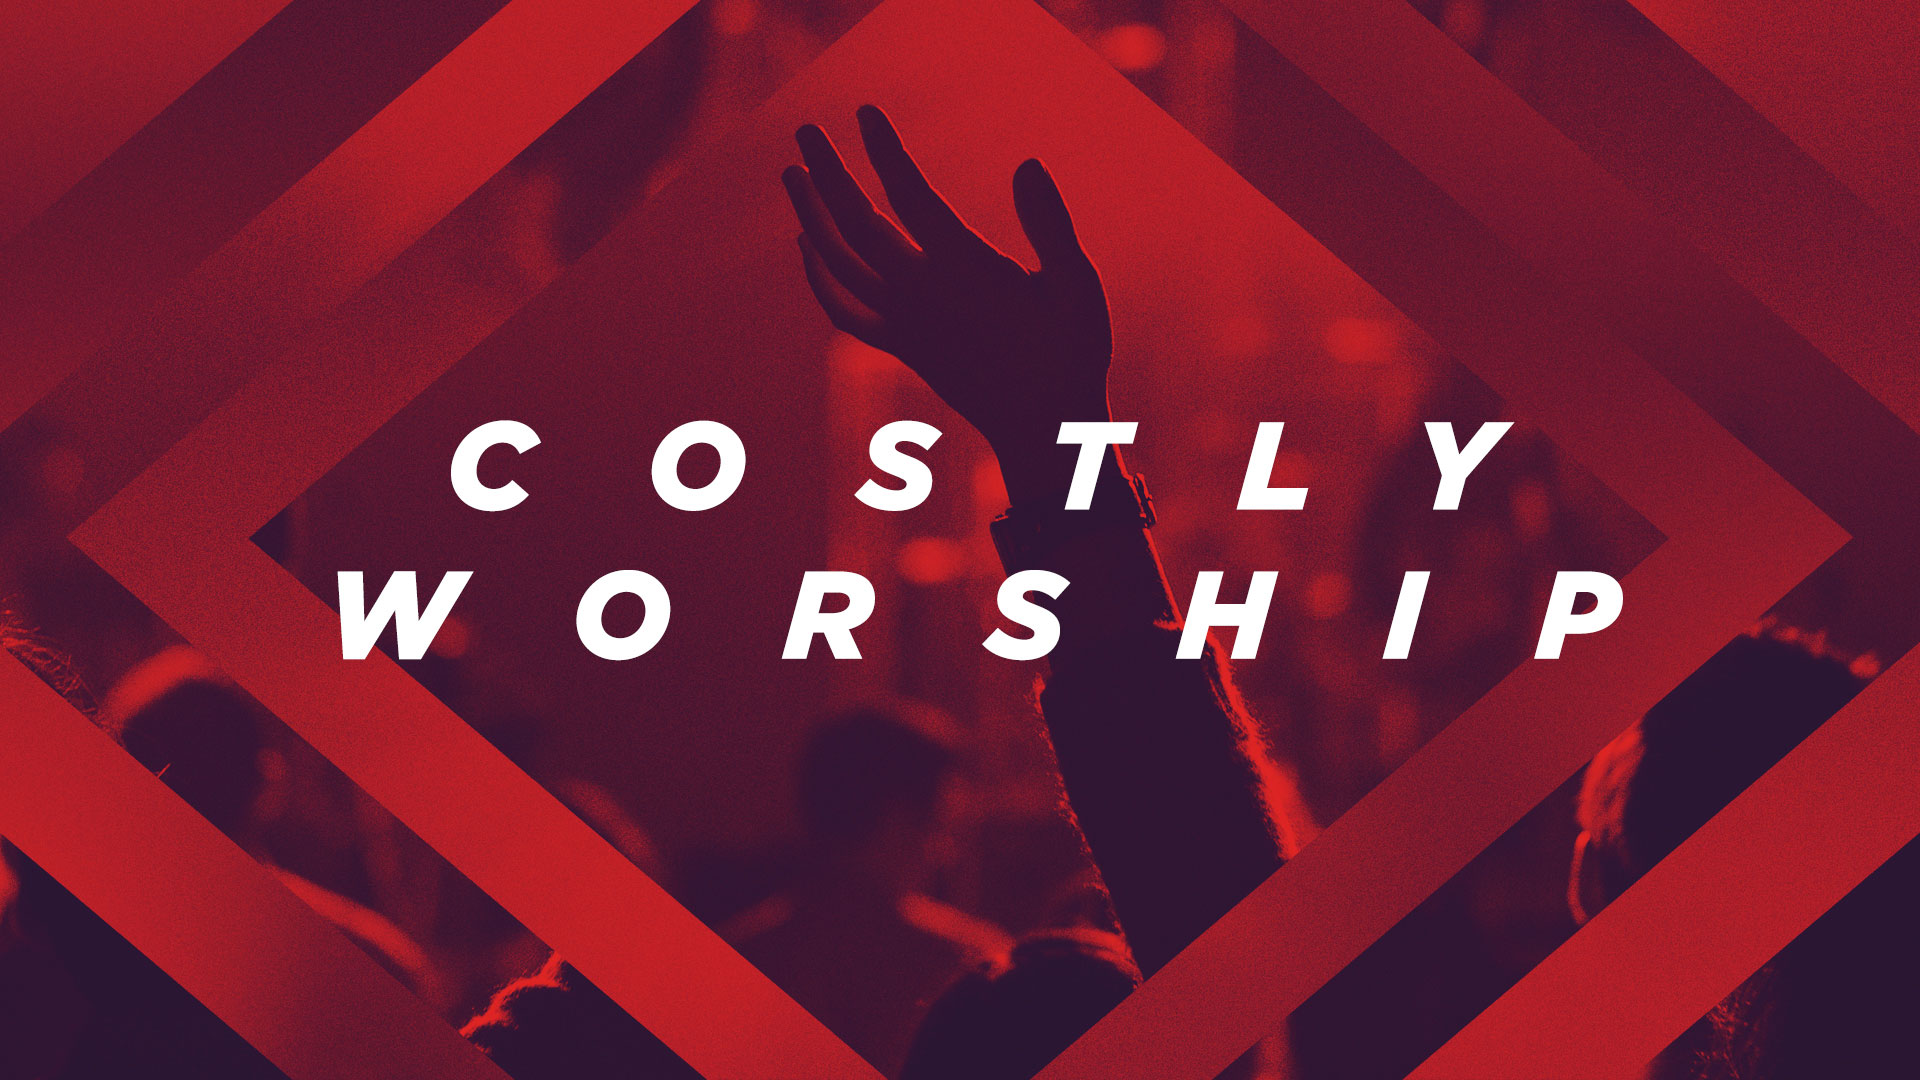 Costly Worship